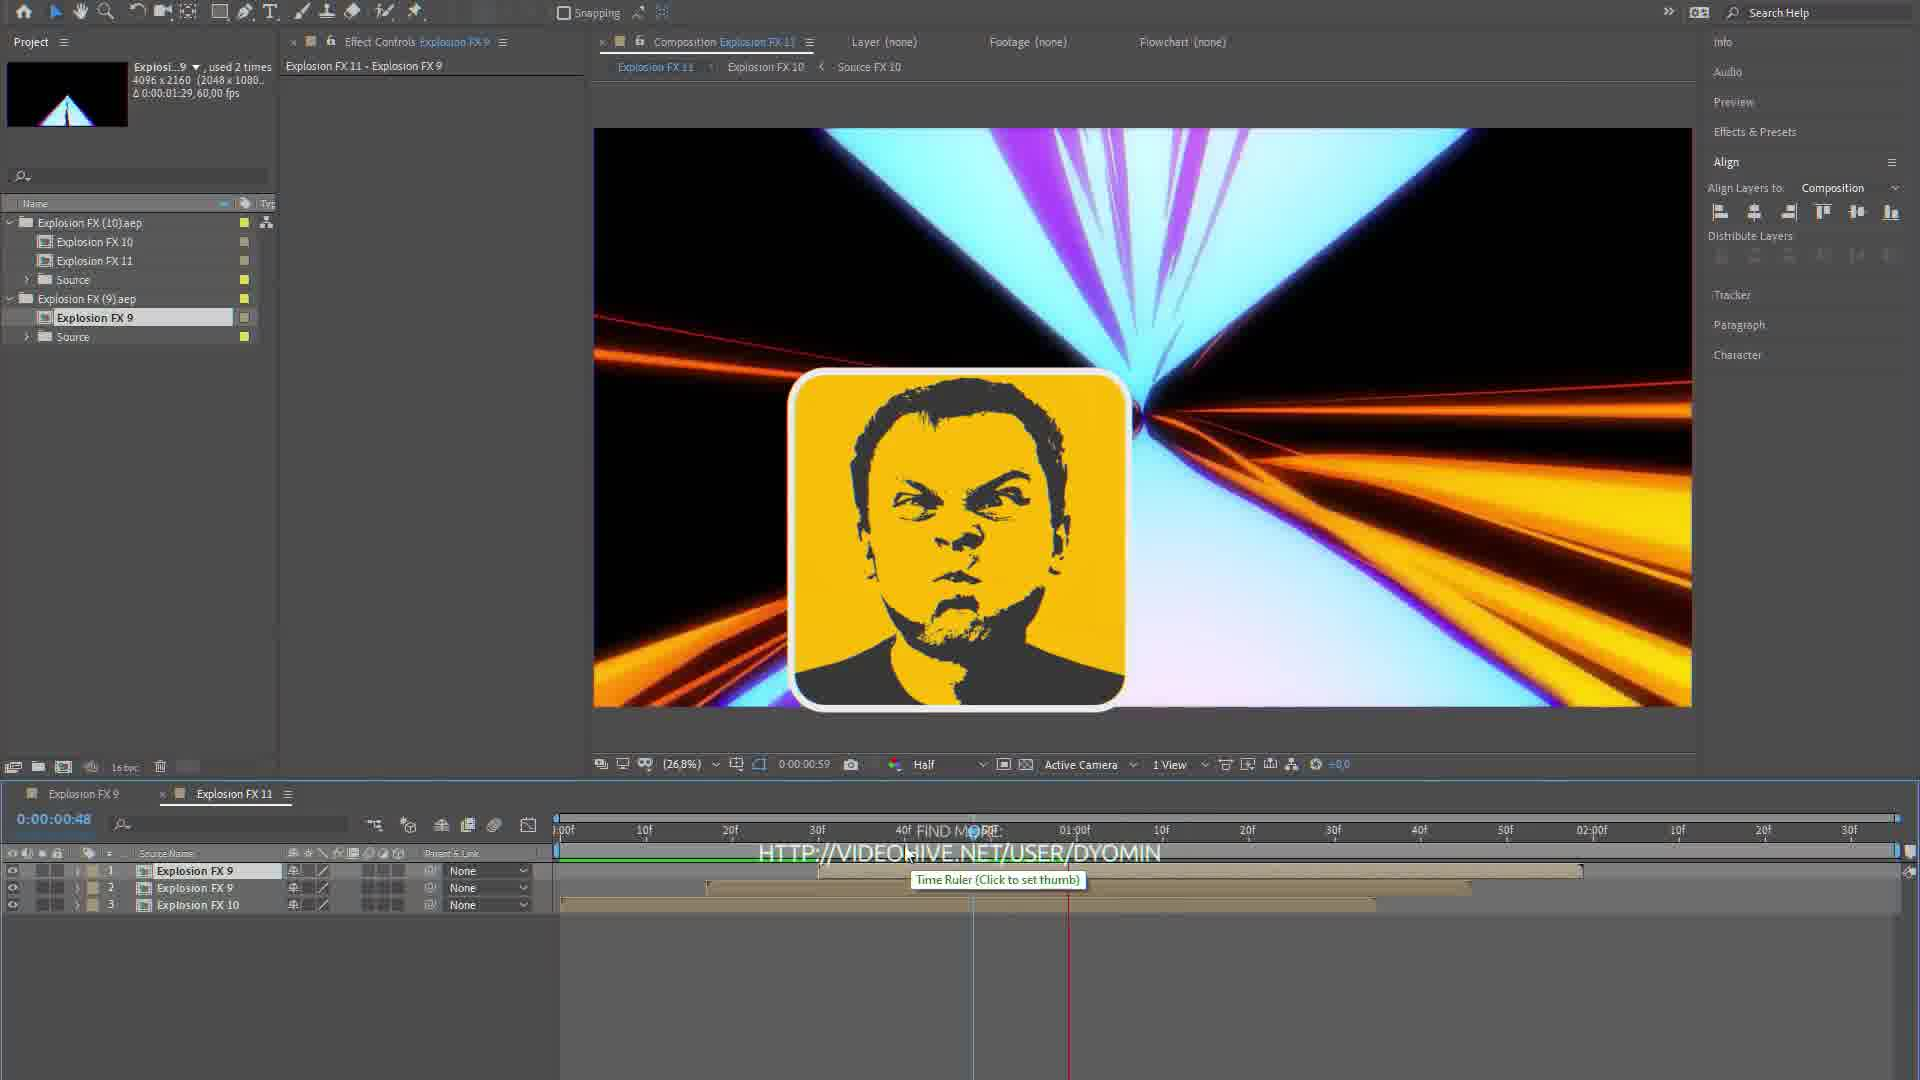 Toonhead (Explosion FX Set 1) Videohive 26141570 After Effects Image 12